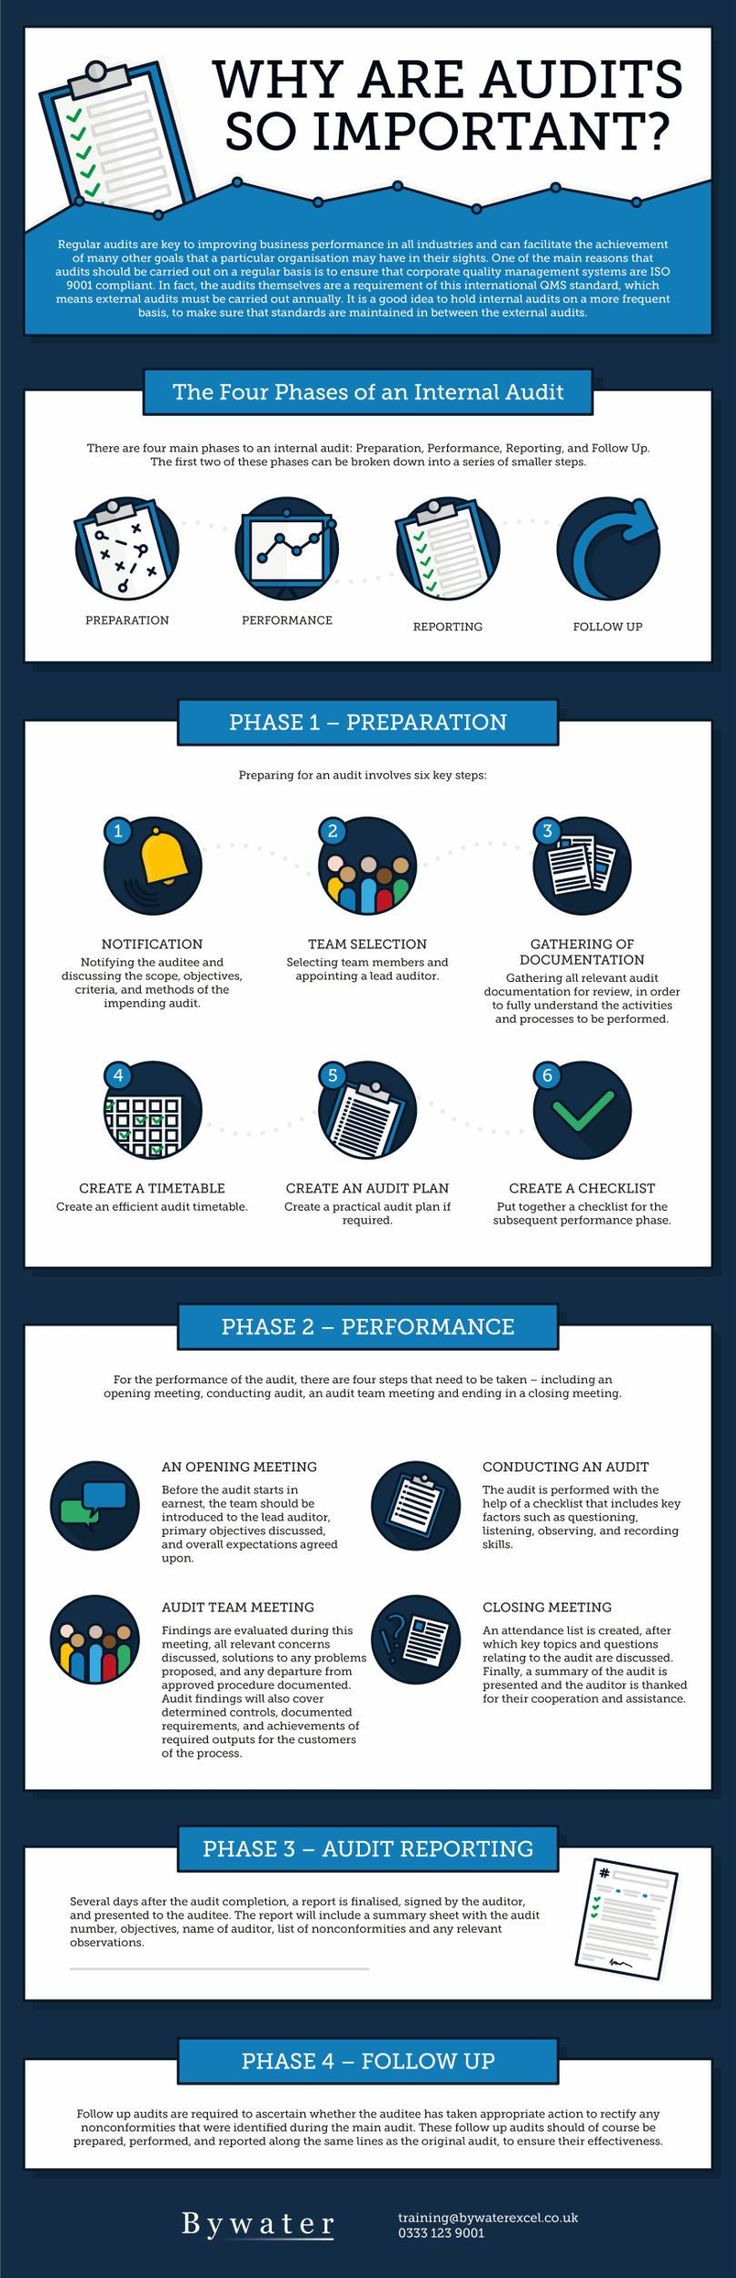 The Importance of Auditing, Explained (Infographic)